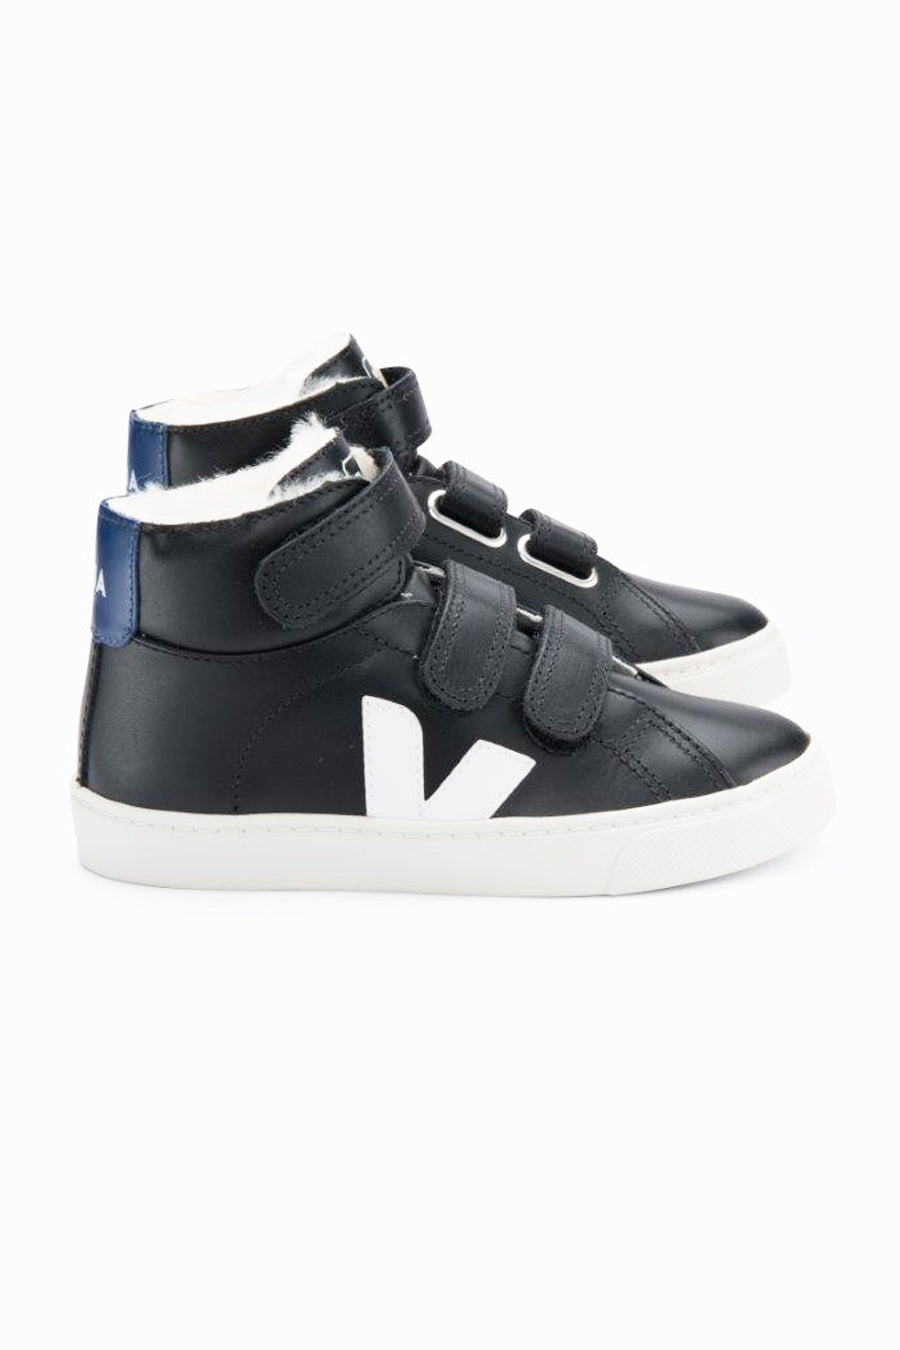 Veja Esplar Shearling High Top Kids Shoes - Black White Cobalt